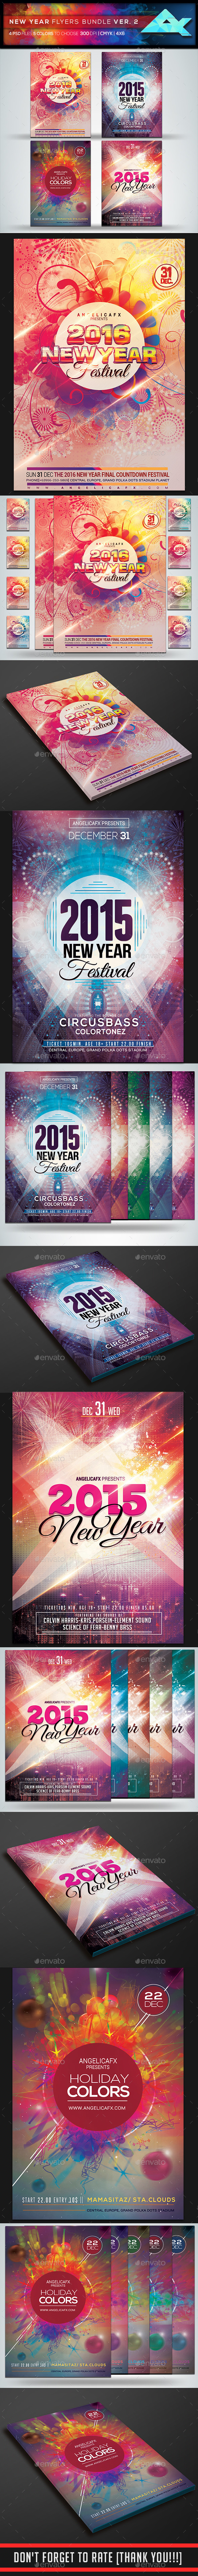 New Year Flyers in Bundle Ver. 2 - Flyers Print Templates